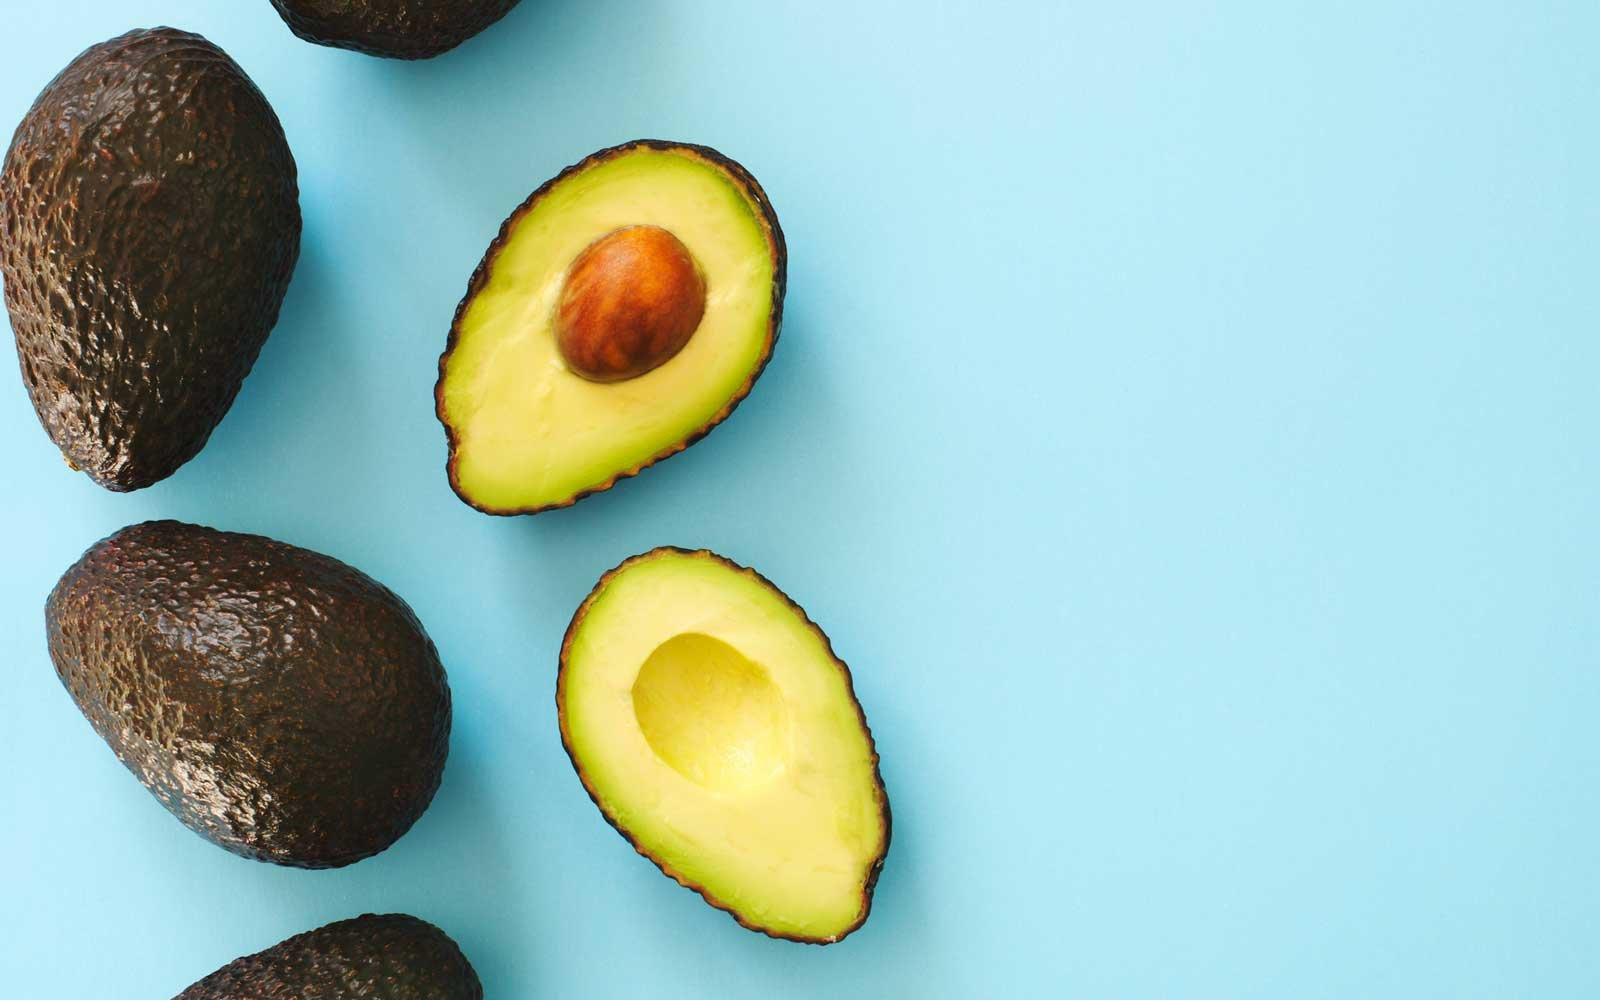 Avocado halves and whole on a blue speckle